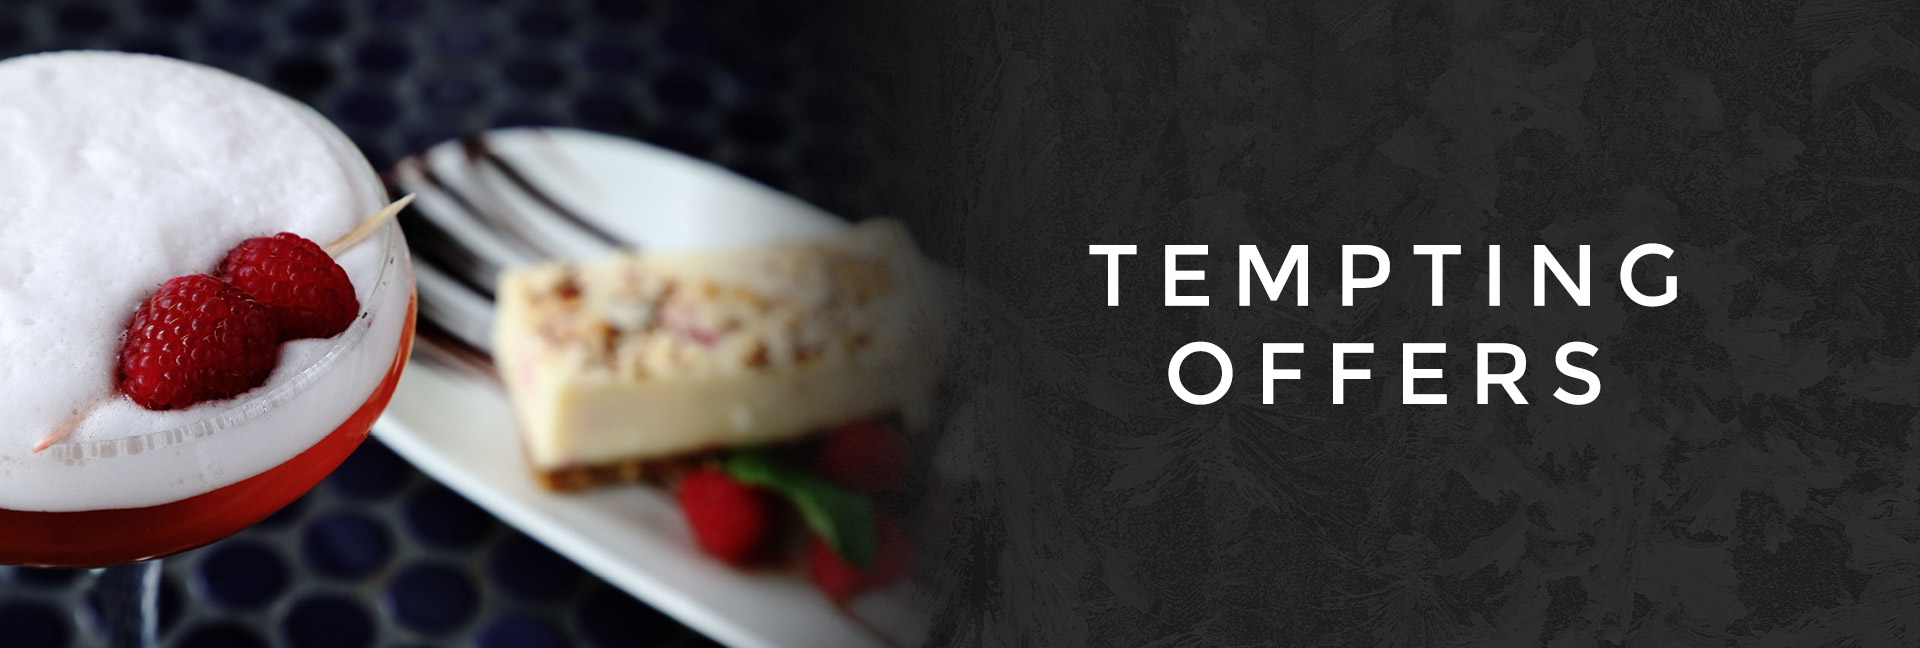 Temping offers at All Bar One Villiers Street